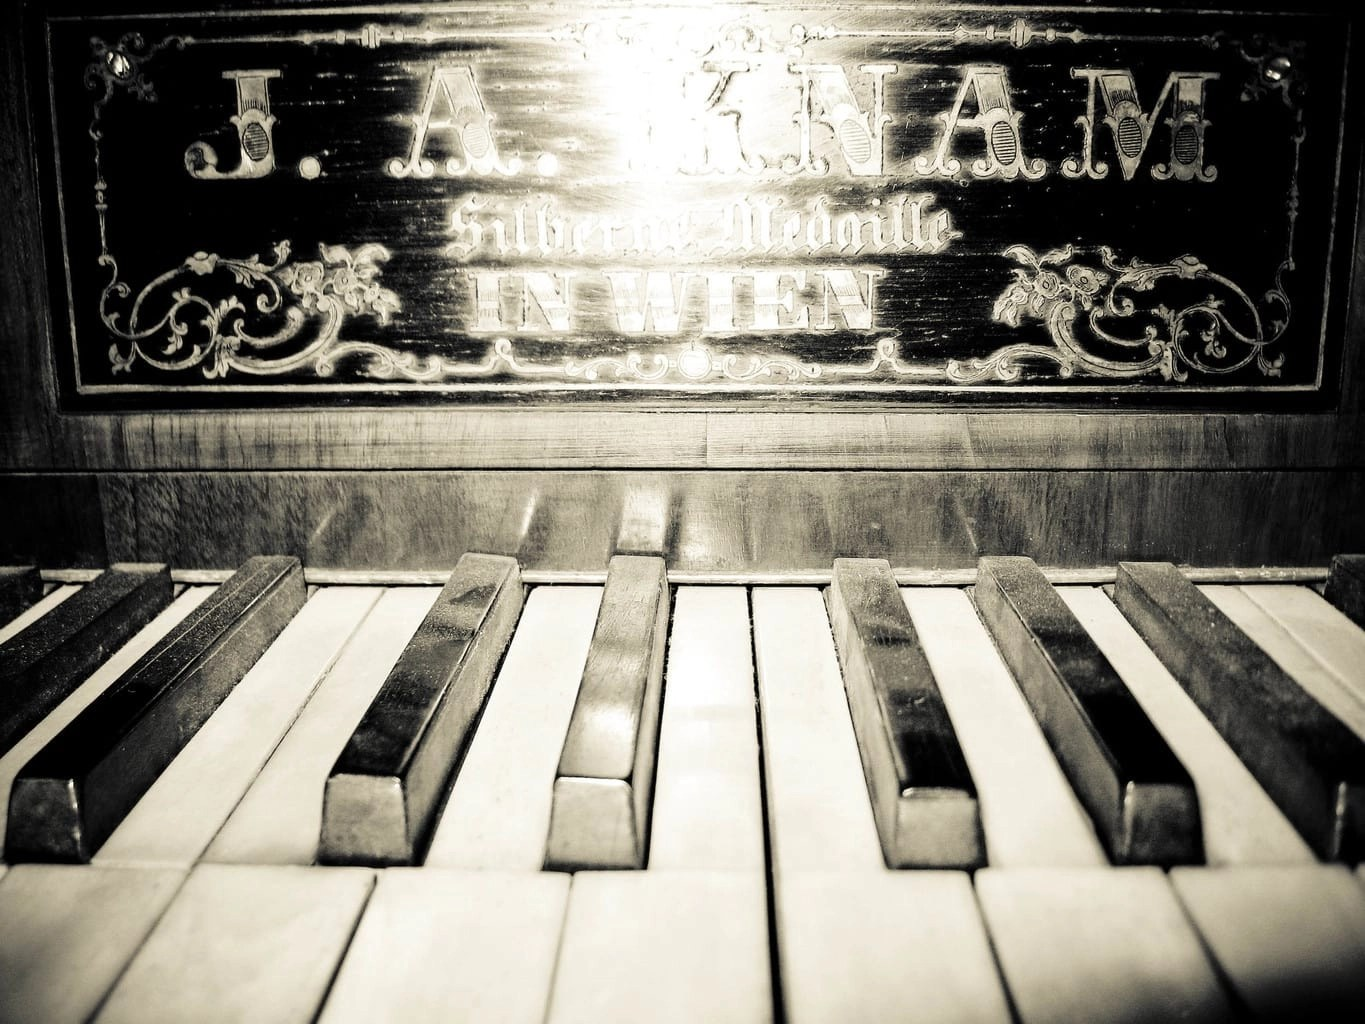 How to write an essay about the history of piano?